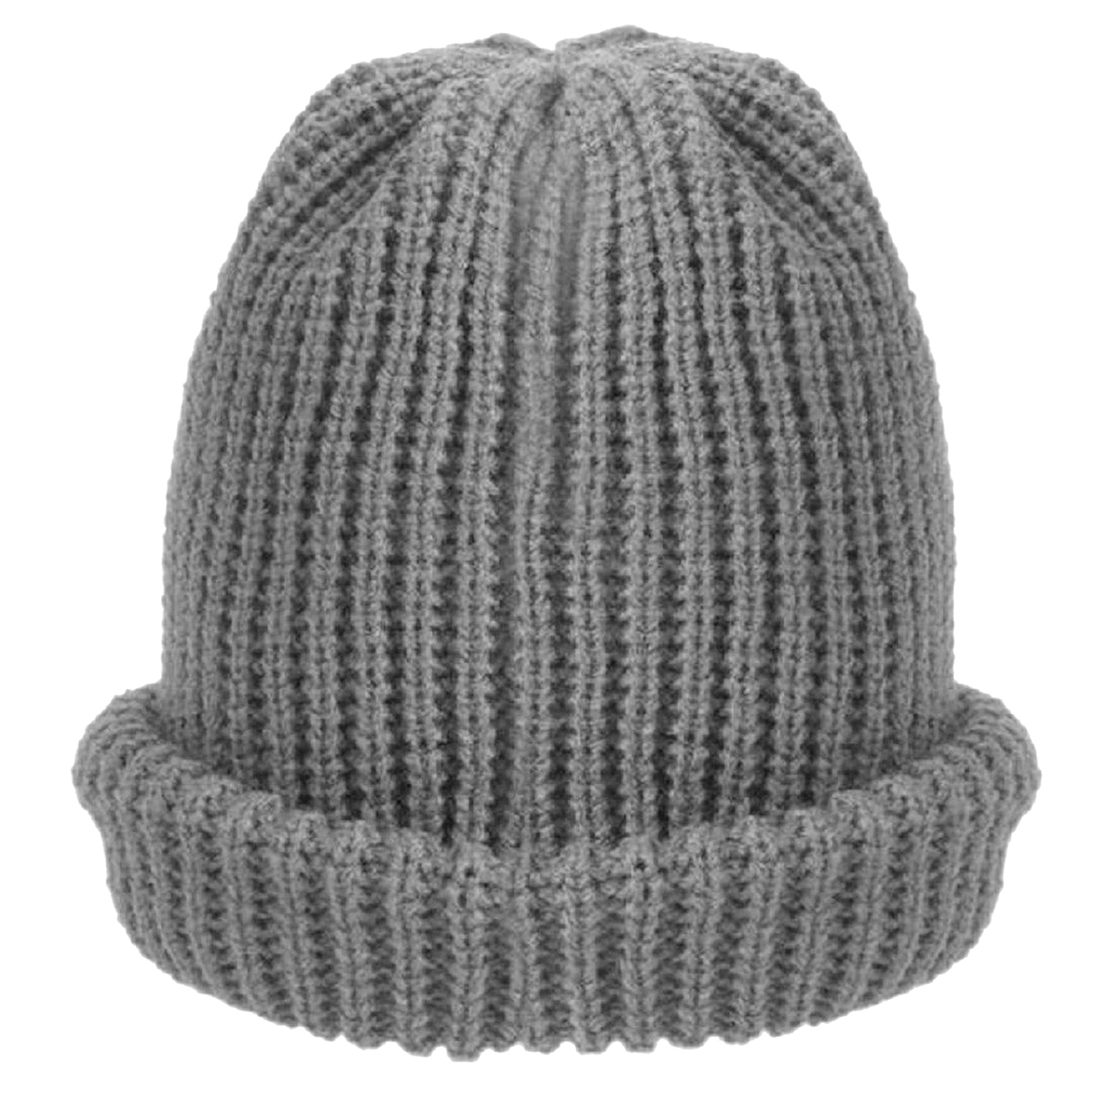 Fahion Hot Winter woolen cap hat with stripes (Gray,Black,Grey,Navy Blue) игрушка ecx ruckus gray blue ecx00013t1